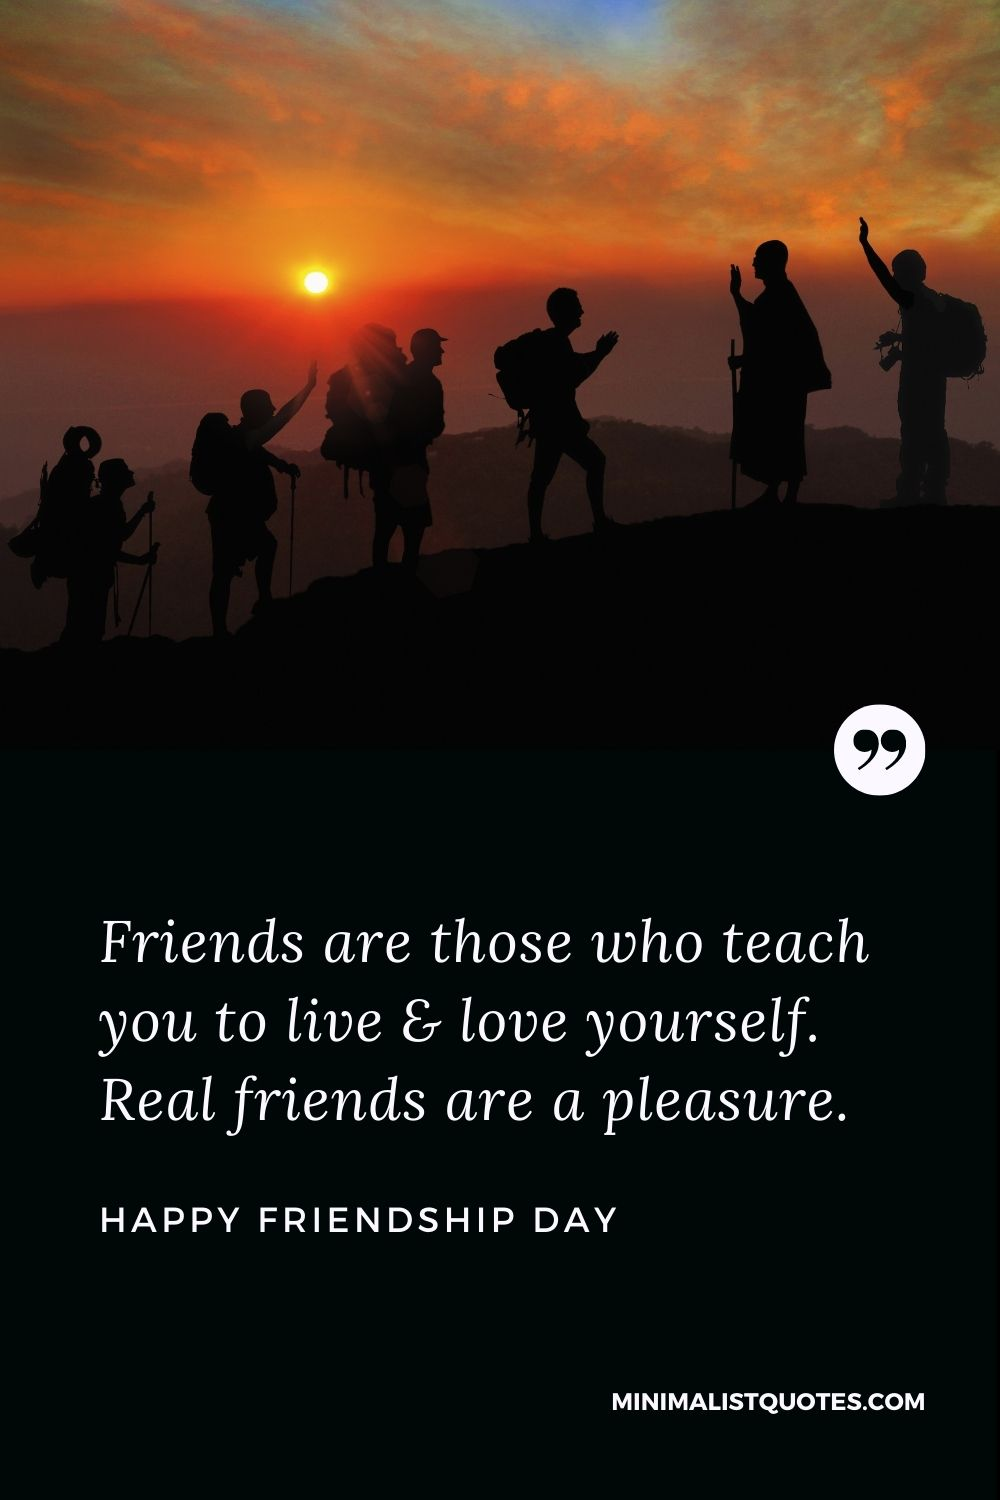 Happy Friendship Day - Friends are those who teach you to live & love yourself. Real friends are a pleasure.